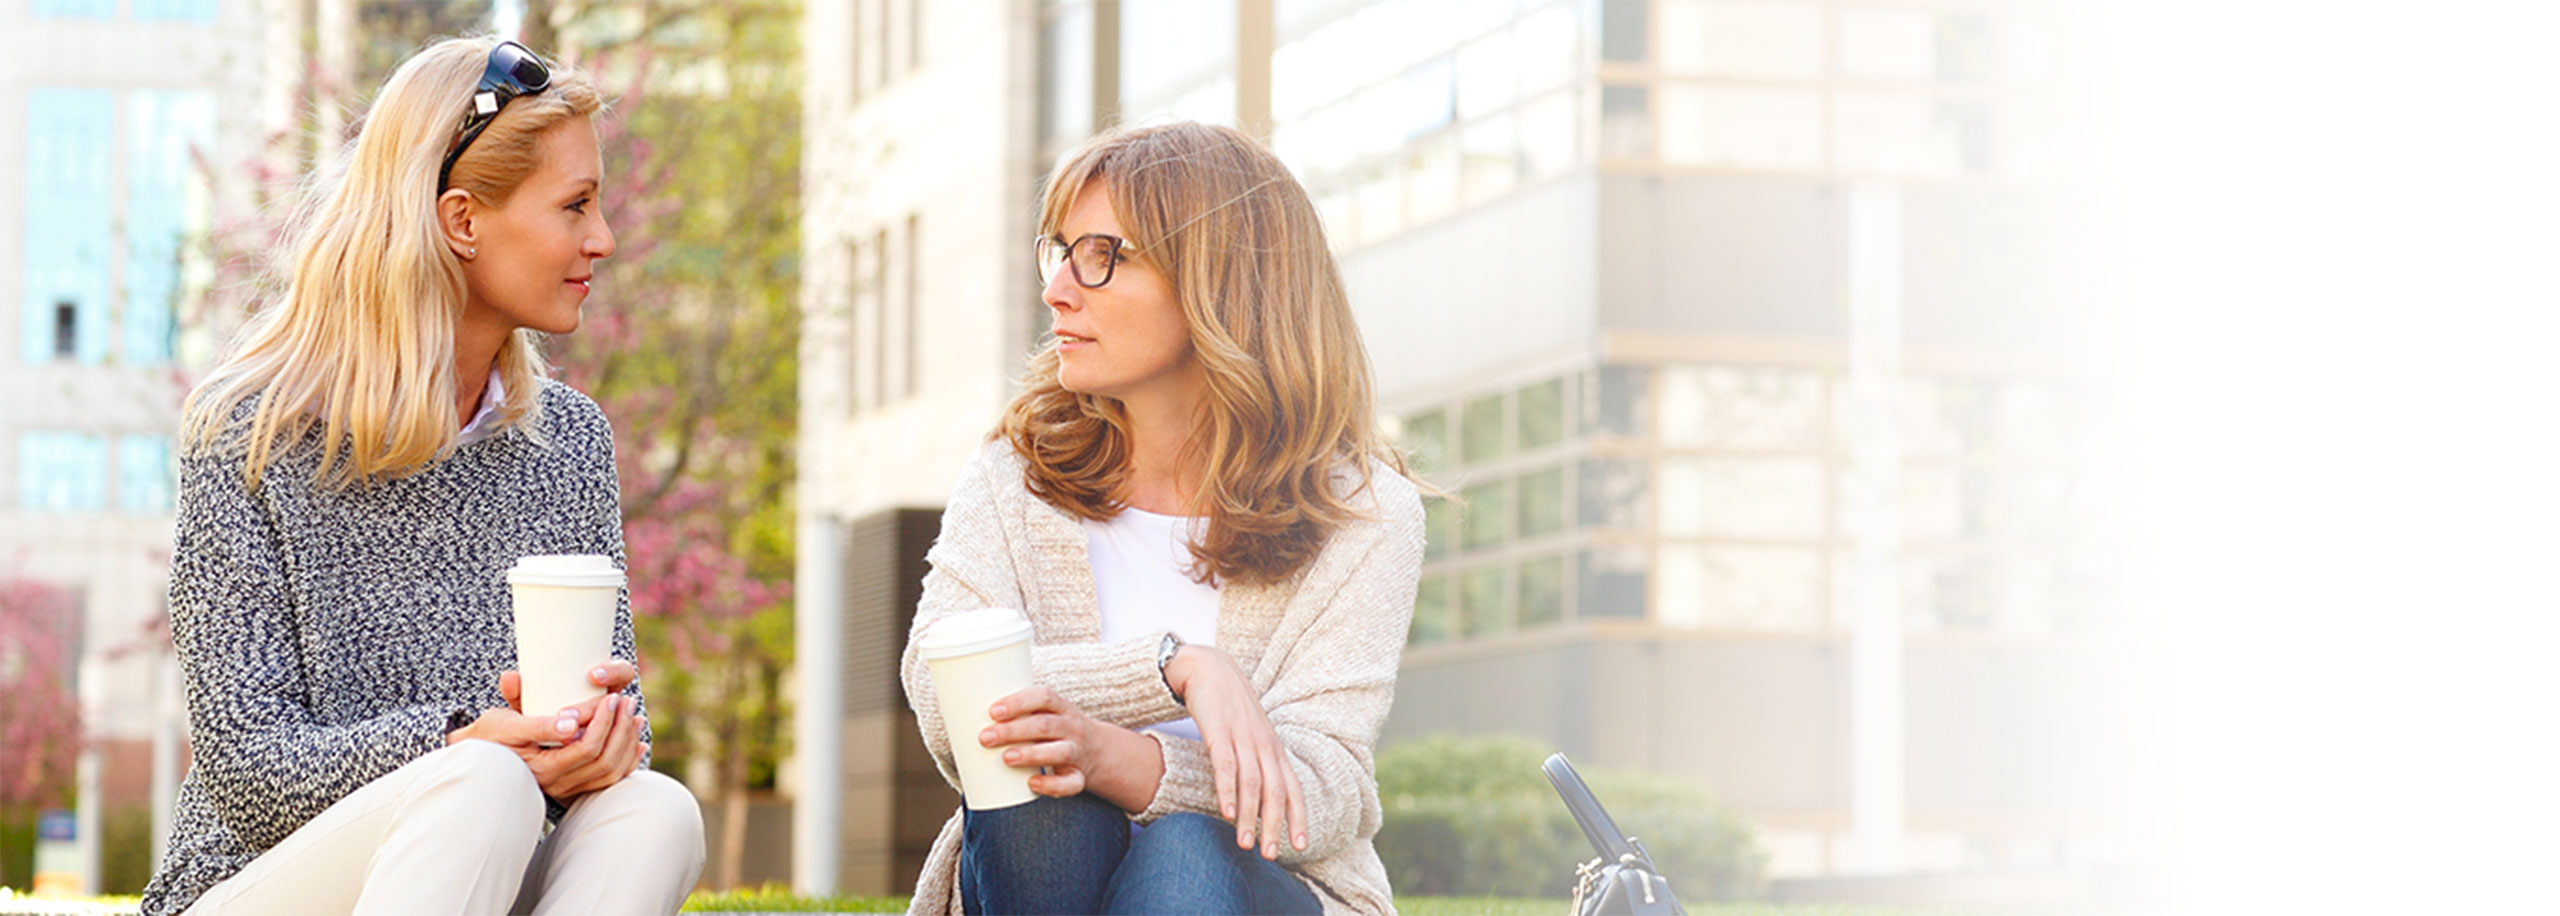 Two women sitting in a city, drinking coffee.